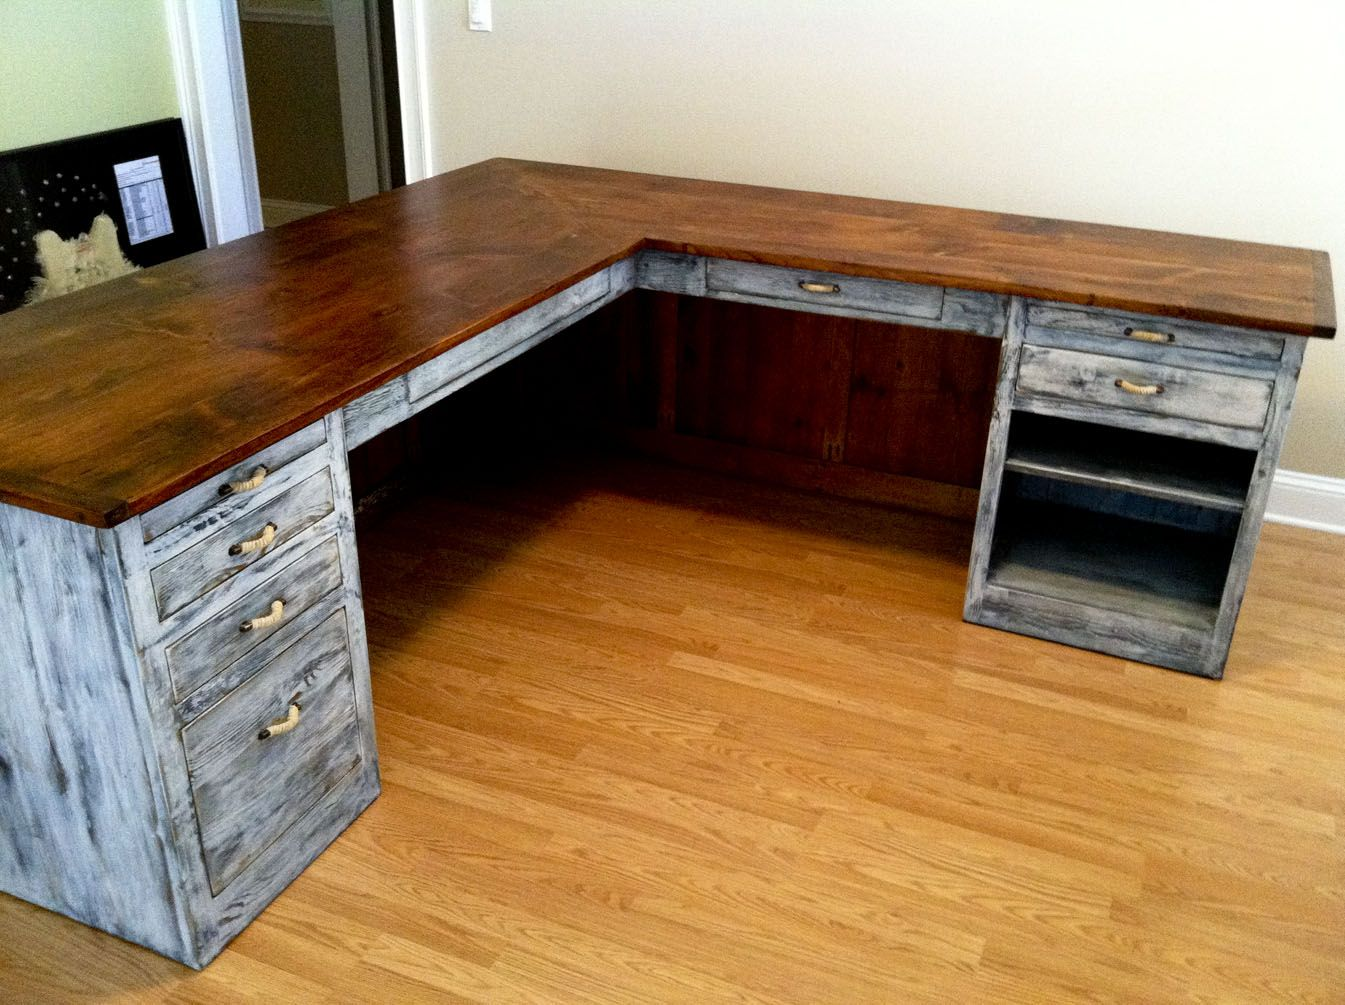 L Shaped Desk From Furniture From The Barn. See More At  Furniturefromthebarn.com